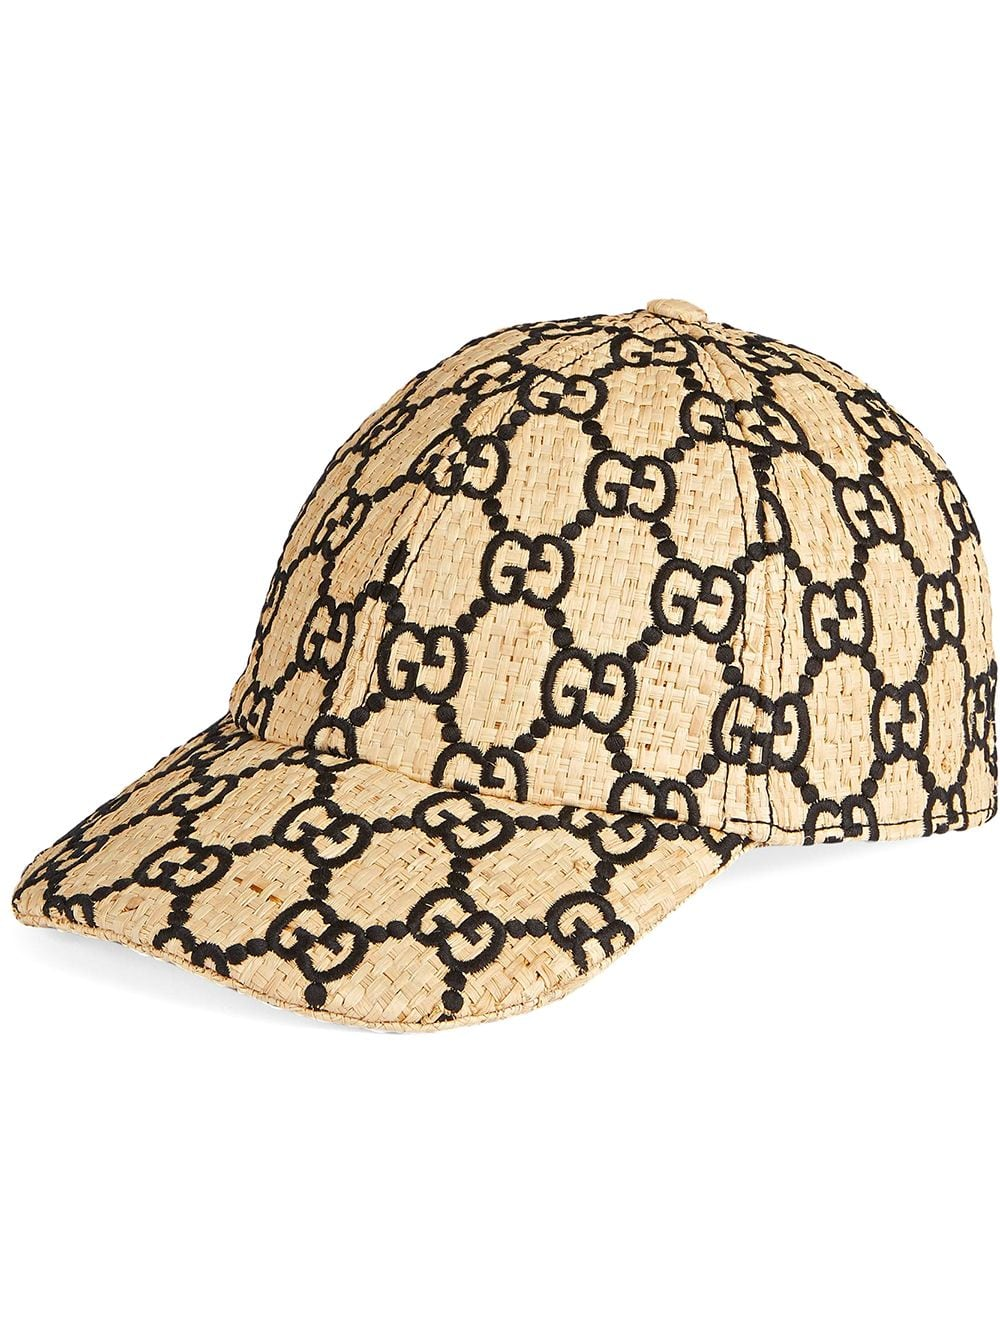 e6c2cbaf66 Gucci GG Baseball Hat With Snakeskin in 2019 | Products | Gucci hat ...